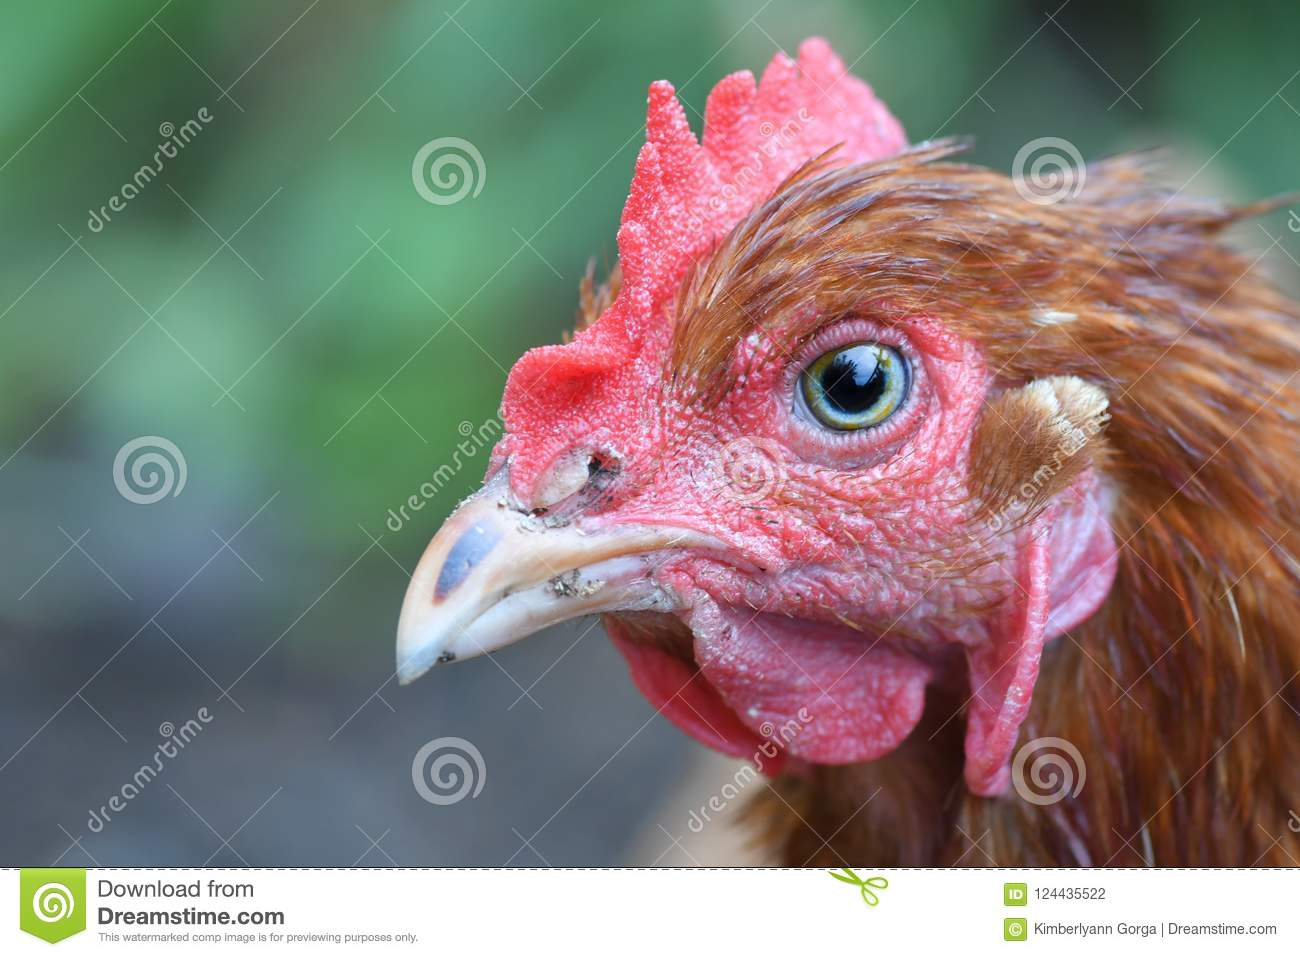 Download Extreme Close Up Of A Red Chicken Stock Photo - Image of close, waddles: 124435522